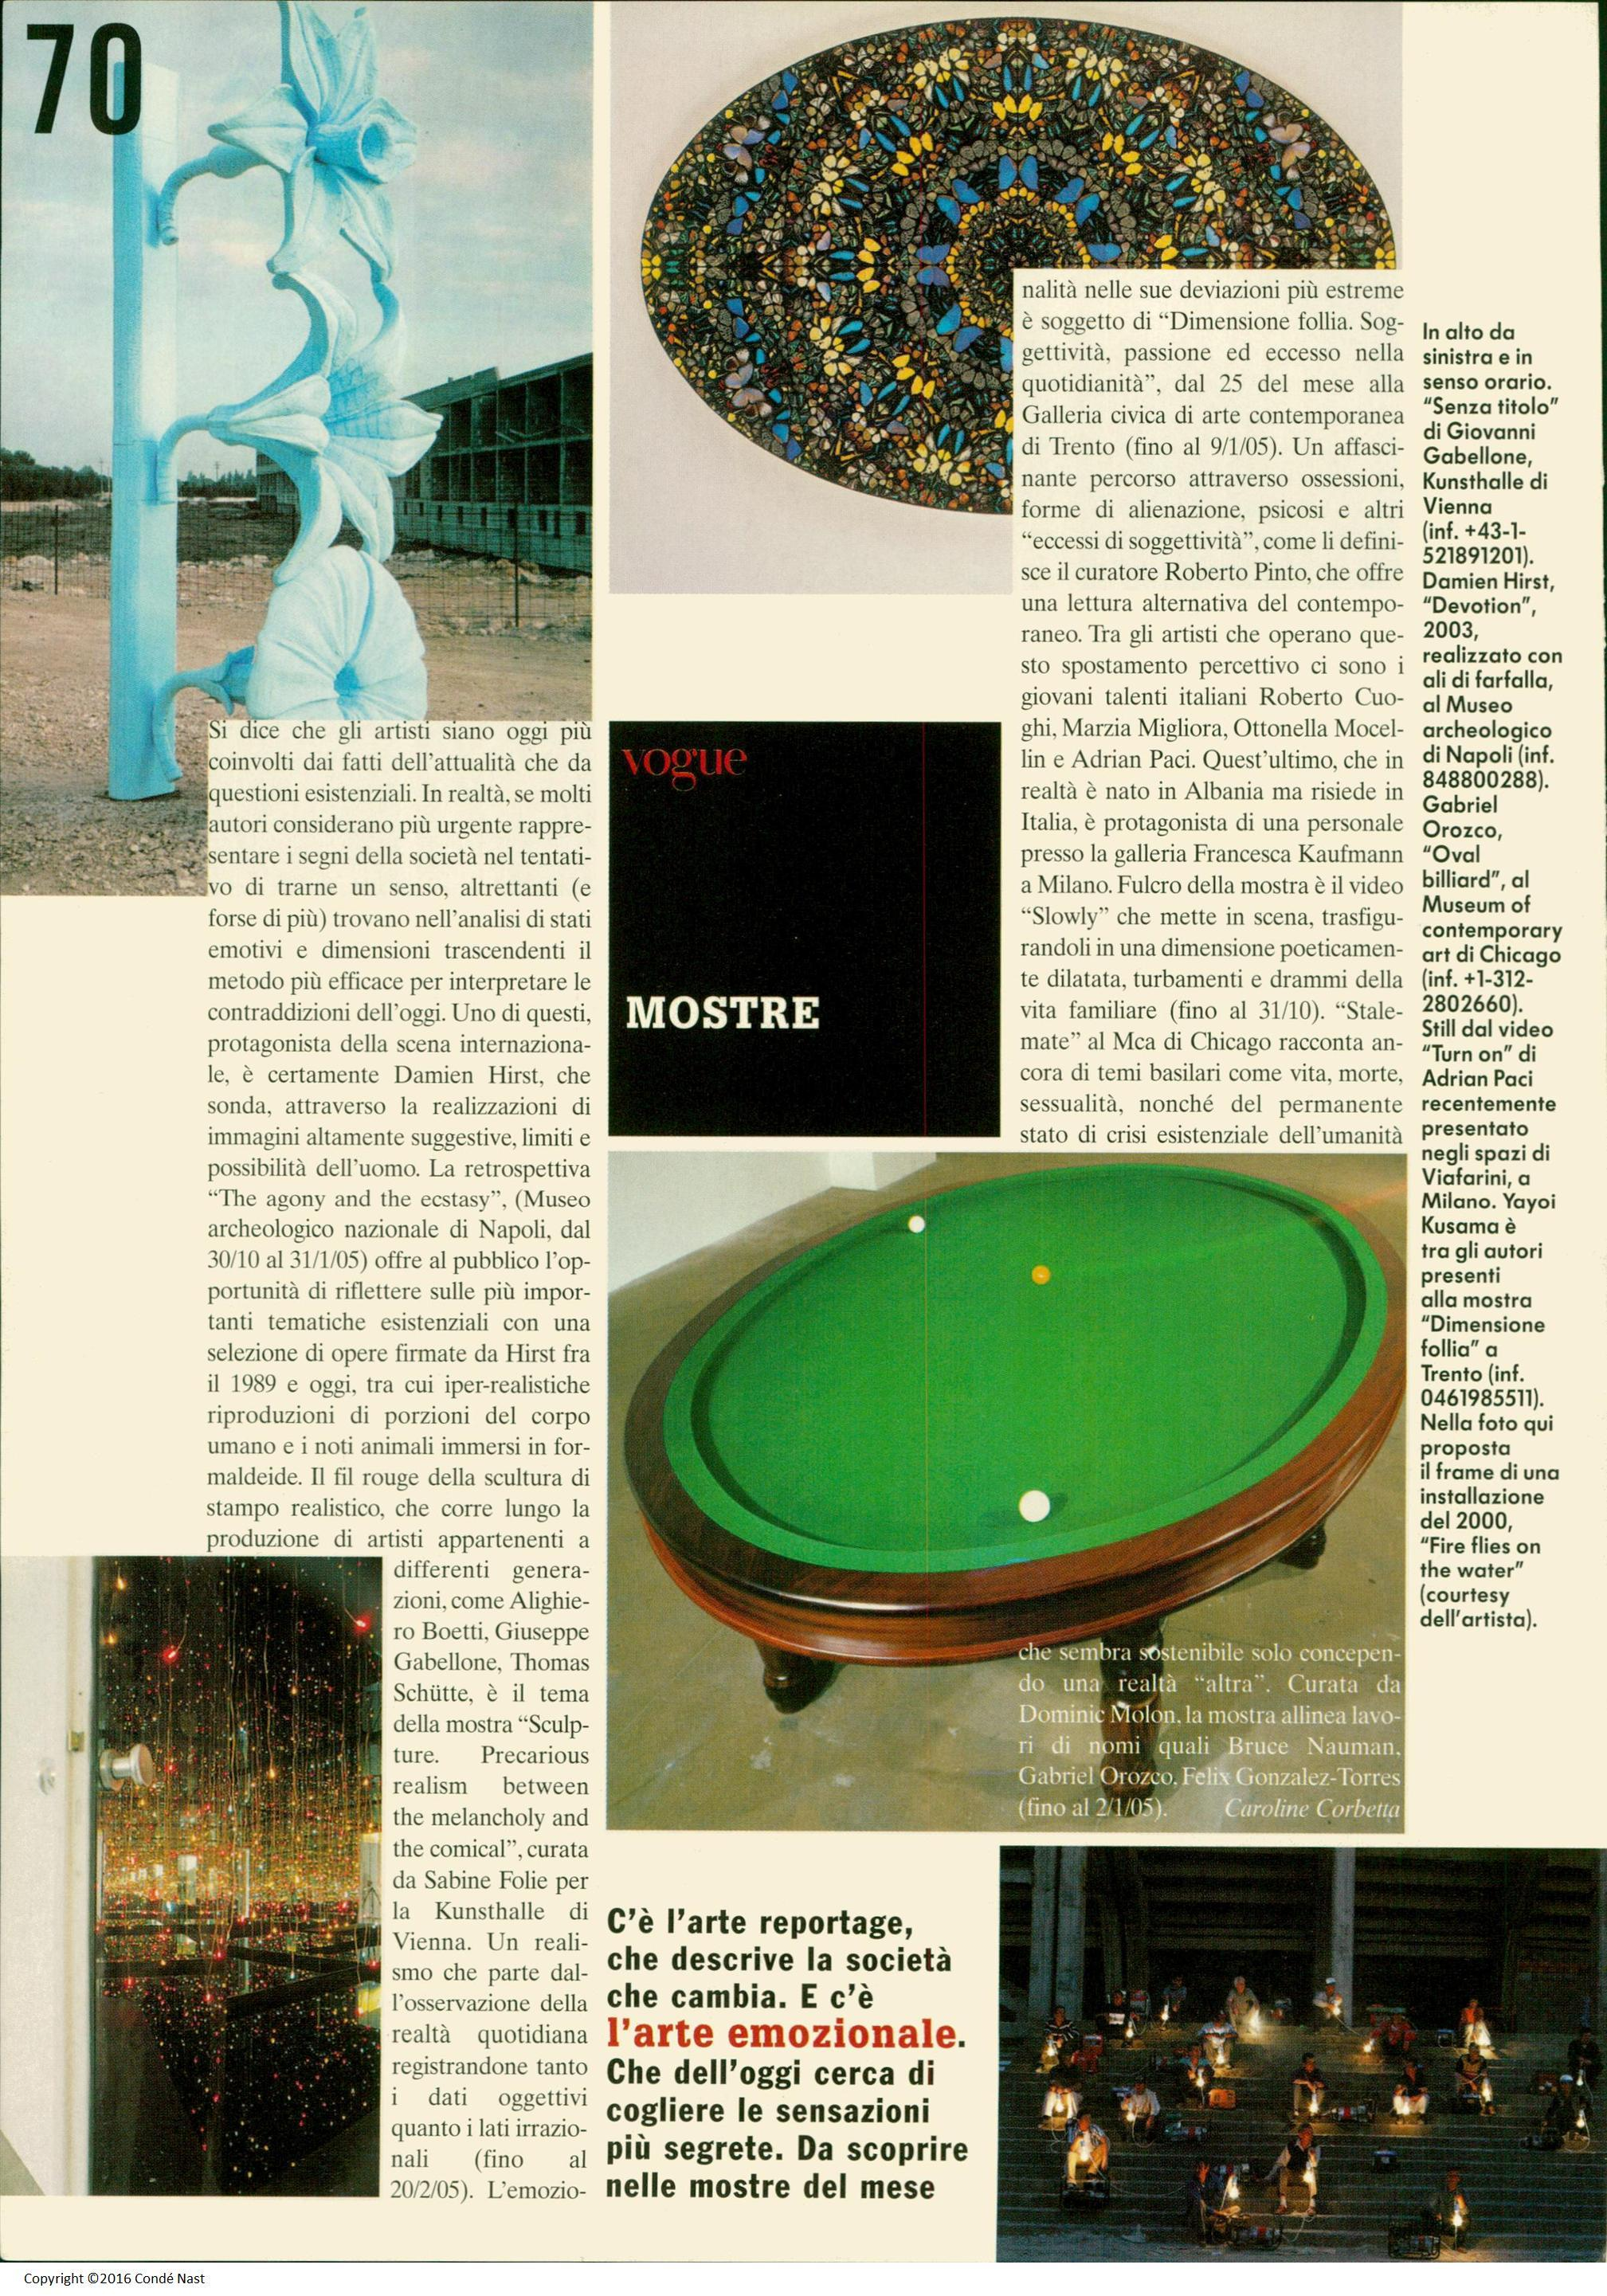 Oct 2004, Arte Emozionale - new trends in art